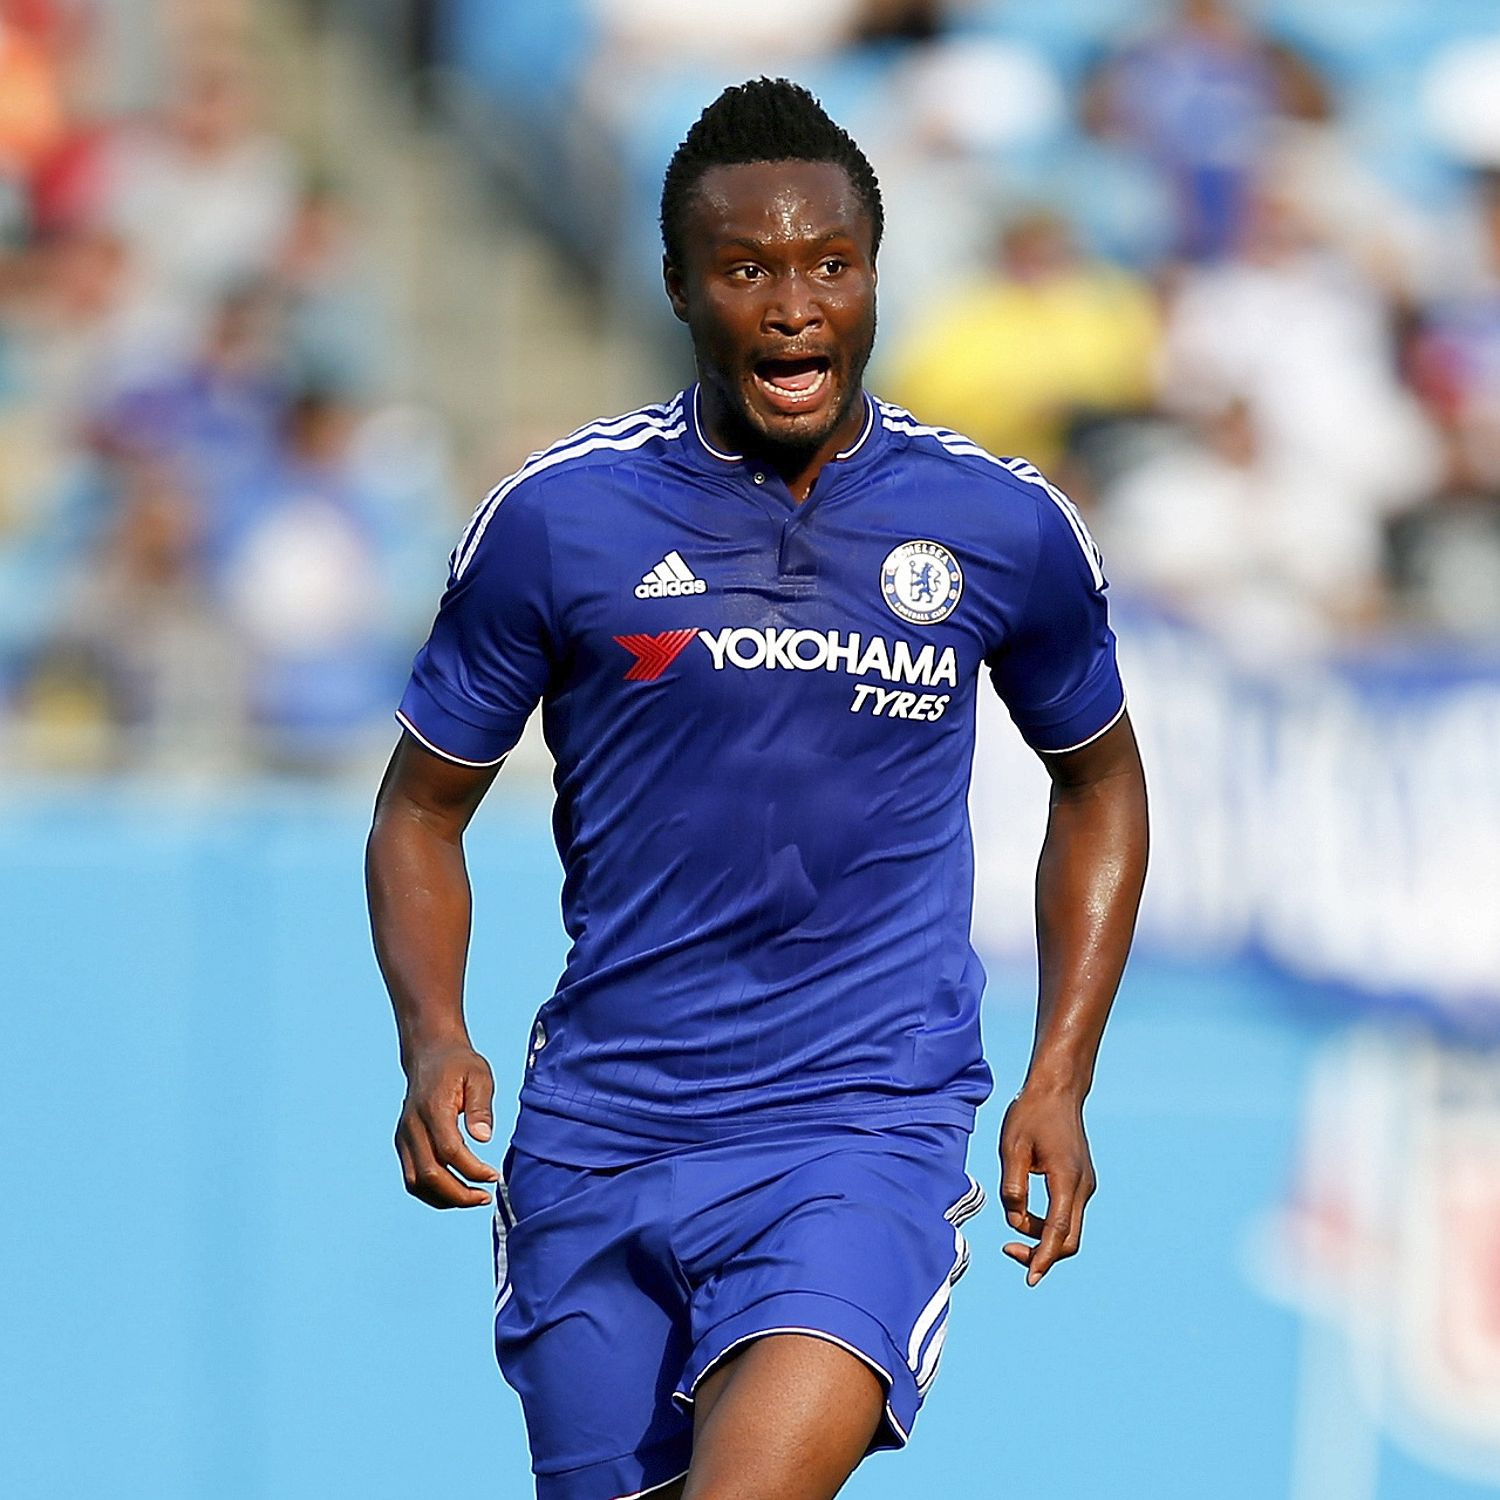 Will Mikel Get More Playing Time At Chelsea Post-Mourinho?